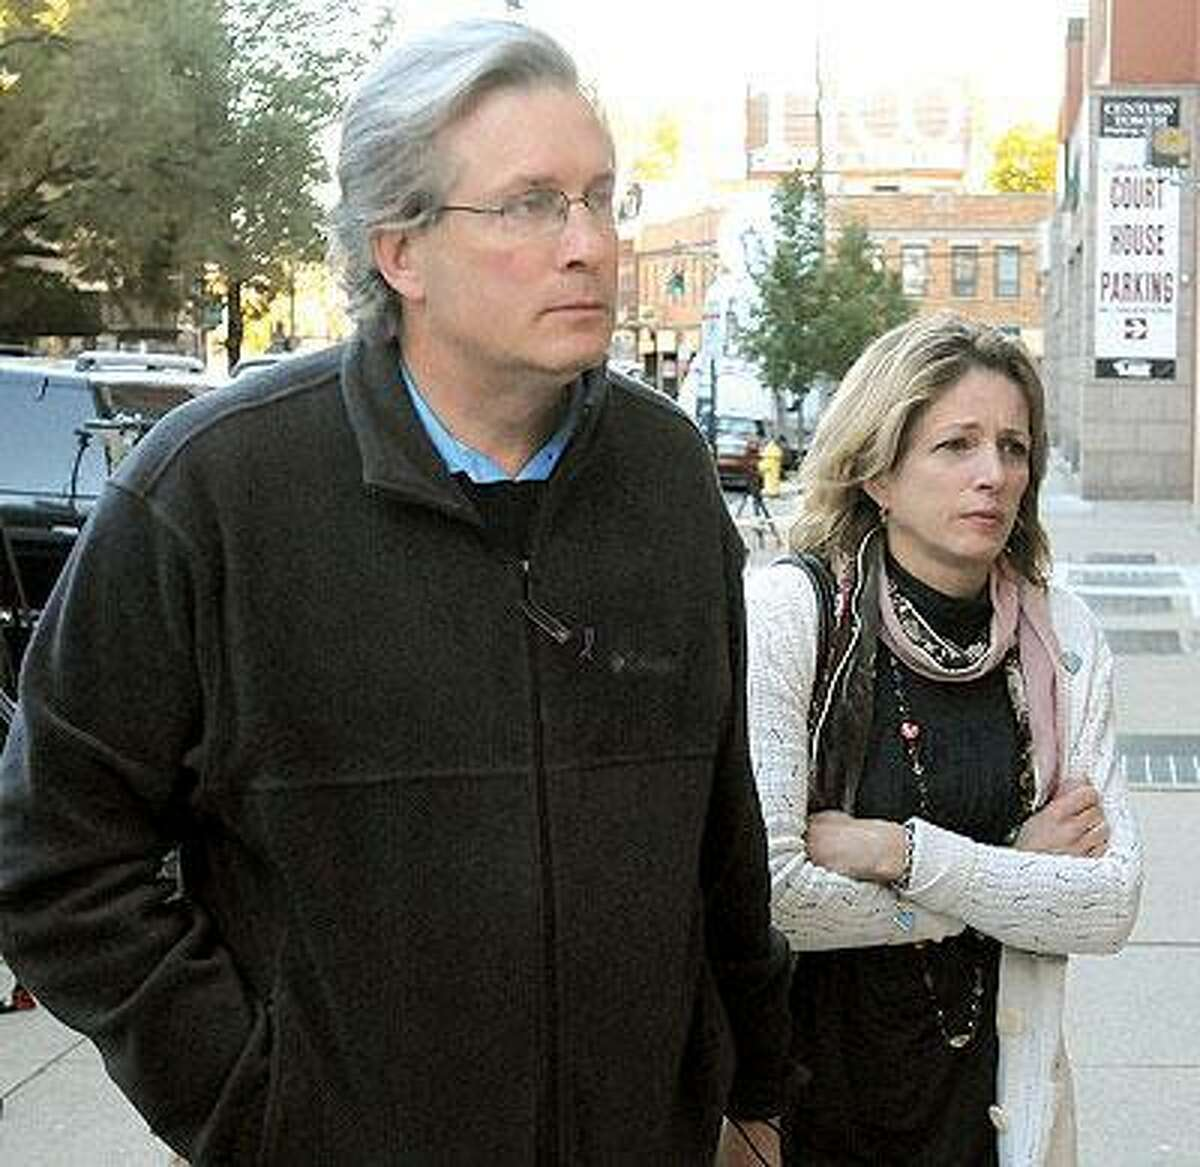 Dr. William Petit Jr. and his sister Johanna Chapman arrive at Superior Court for continued jury deliberations on the sentence for convicted killer Steven Hayes. (Photo by Mara Lavitt/New Haven Register)